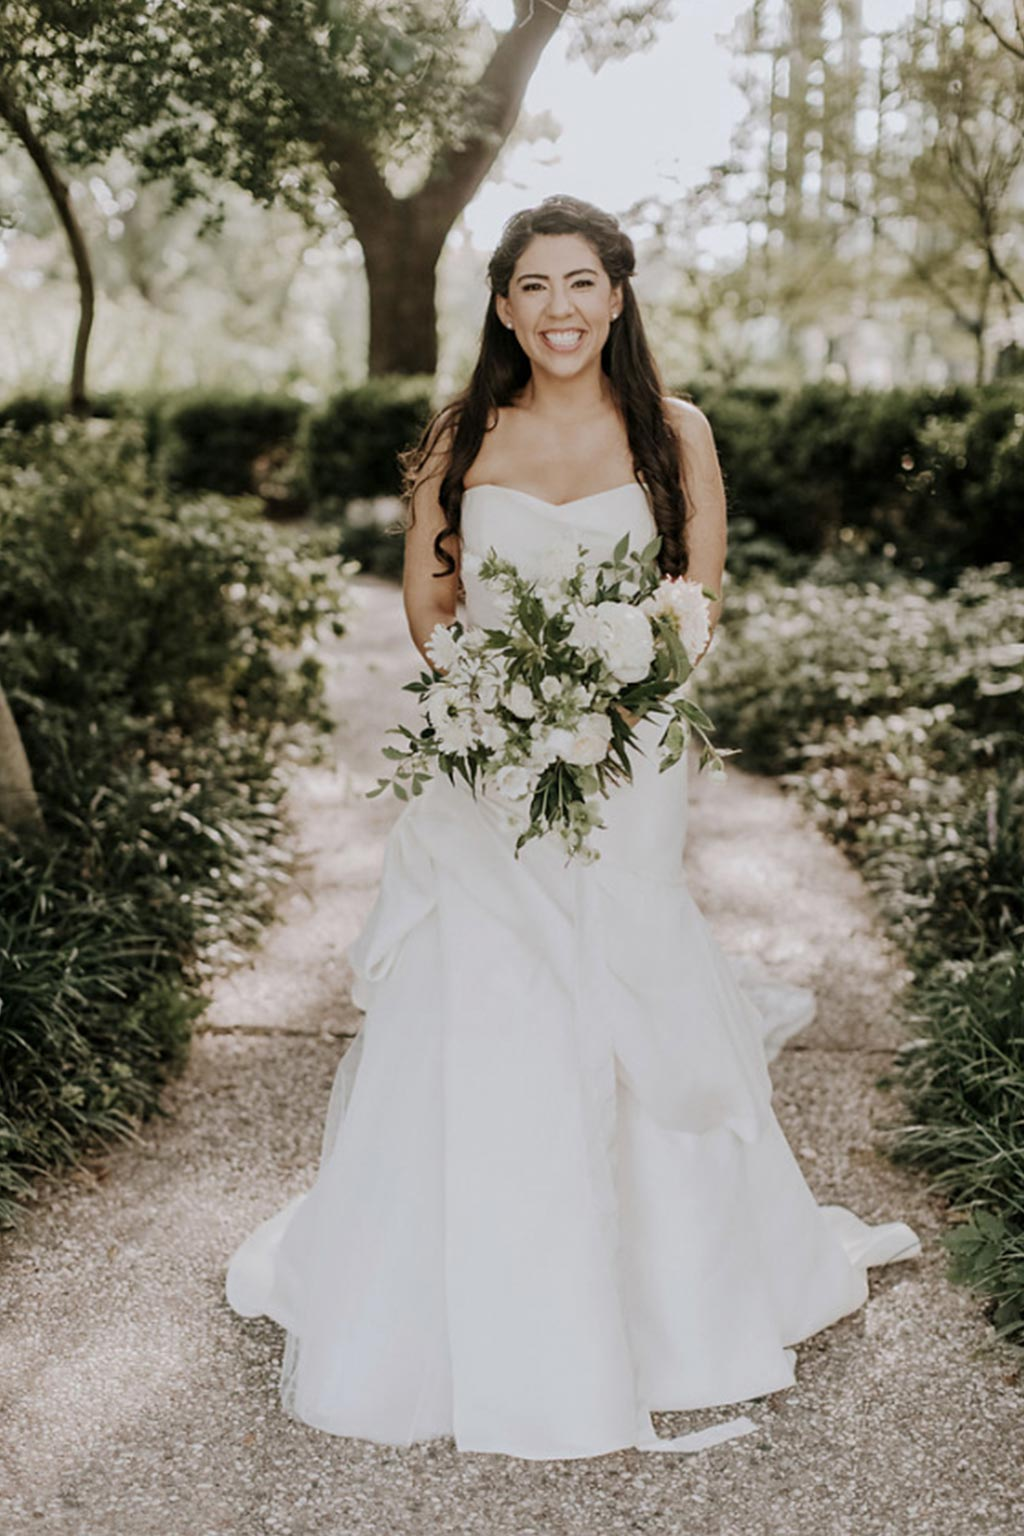 Wedding day garden bridal portrait with white and green natural bouquet and Madison by Monique Lhuillier sleeveless wedding dress